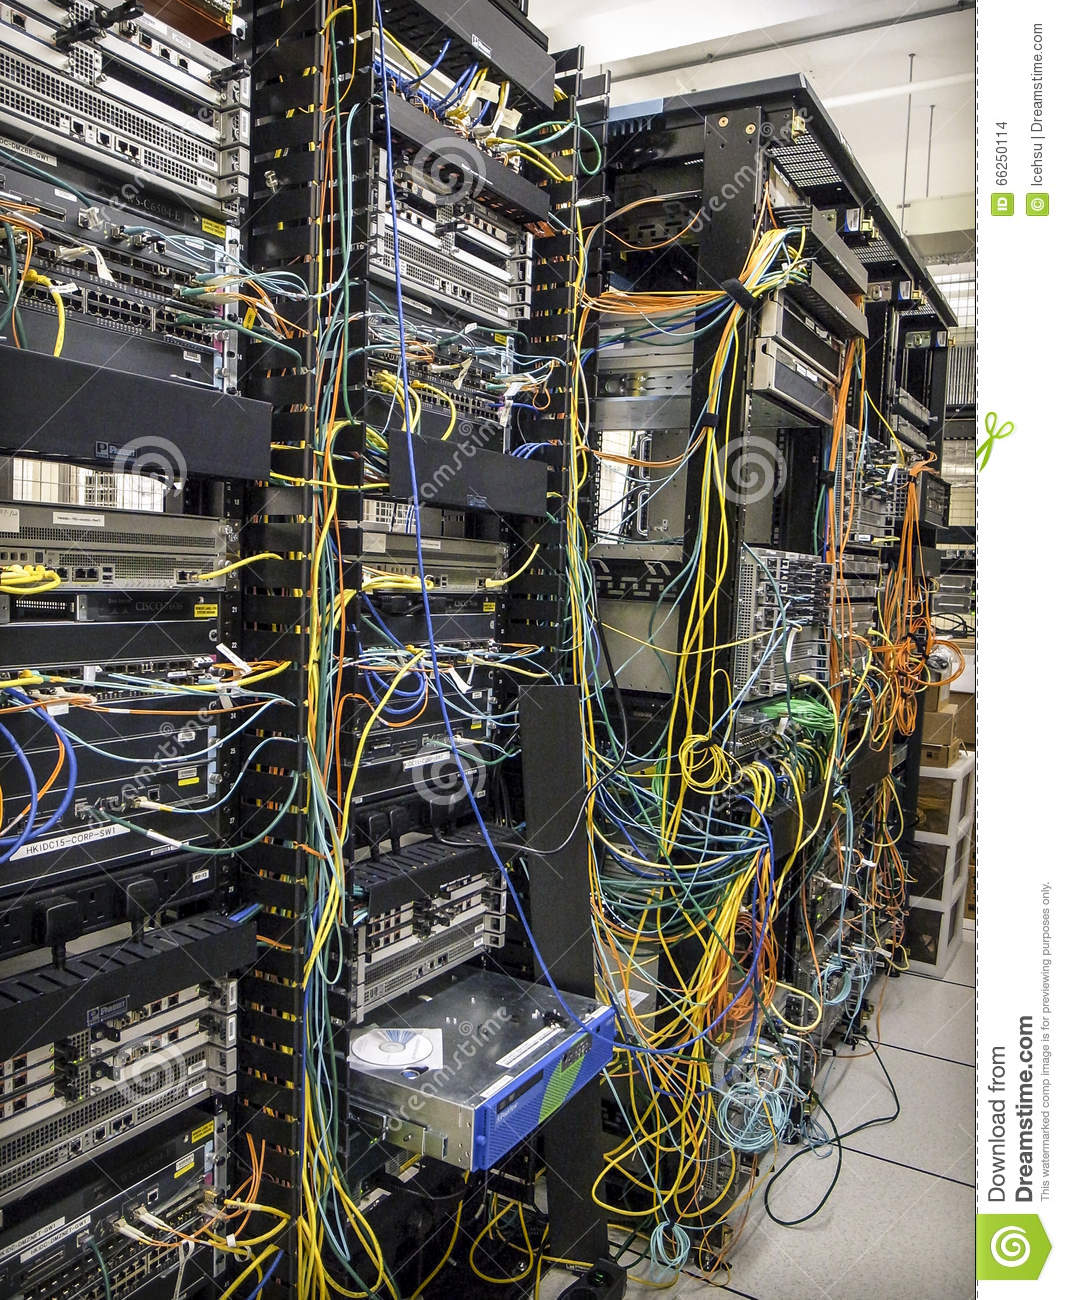 Busy Network Racks Stock Photo - Image: 66250114